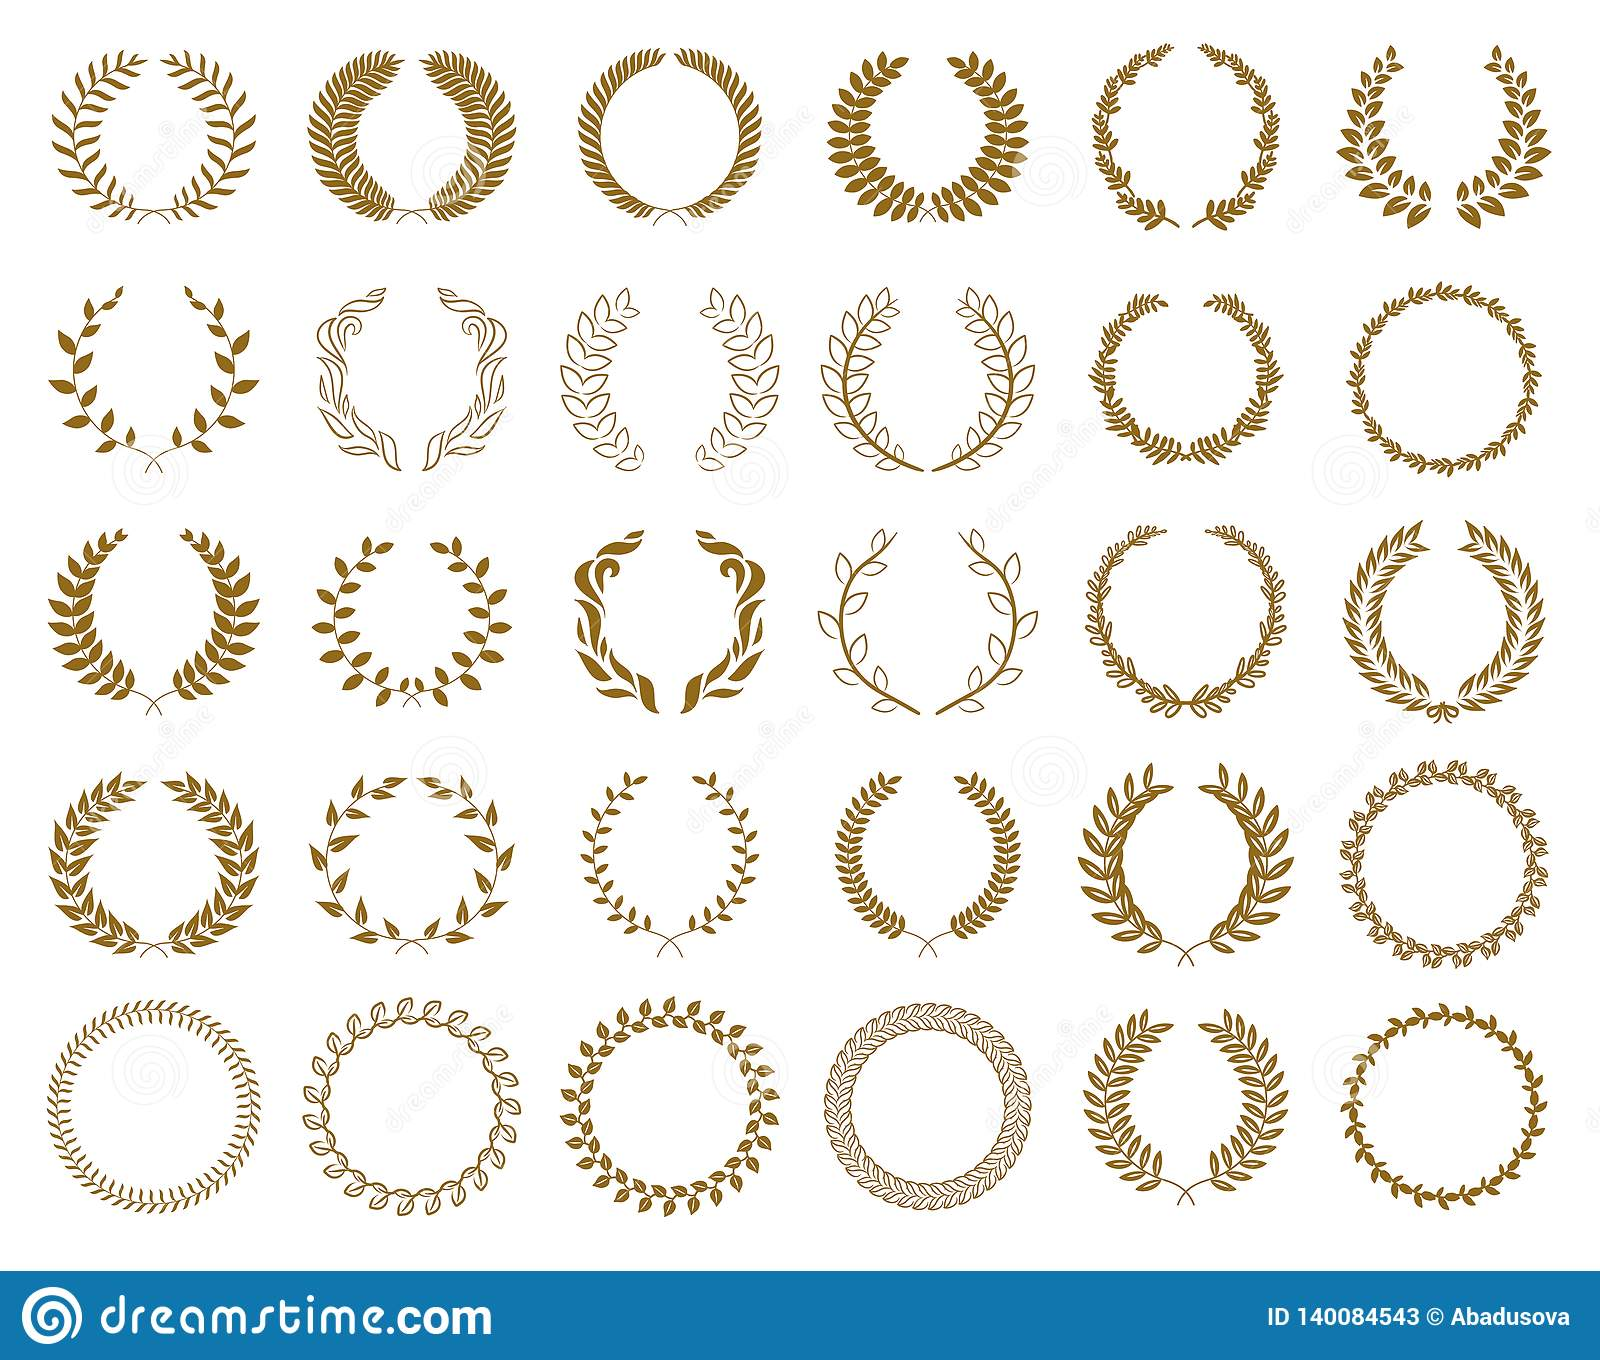 Set of gold award laurel wreaths and branches on white background, vector illustration